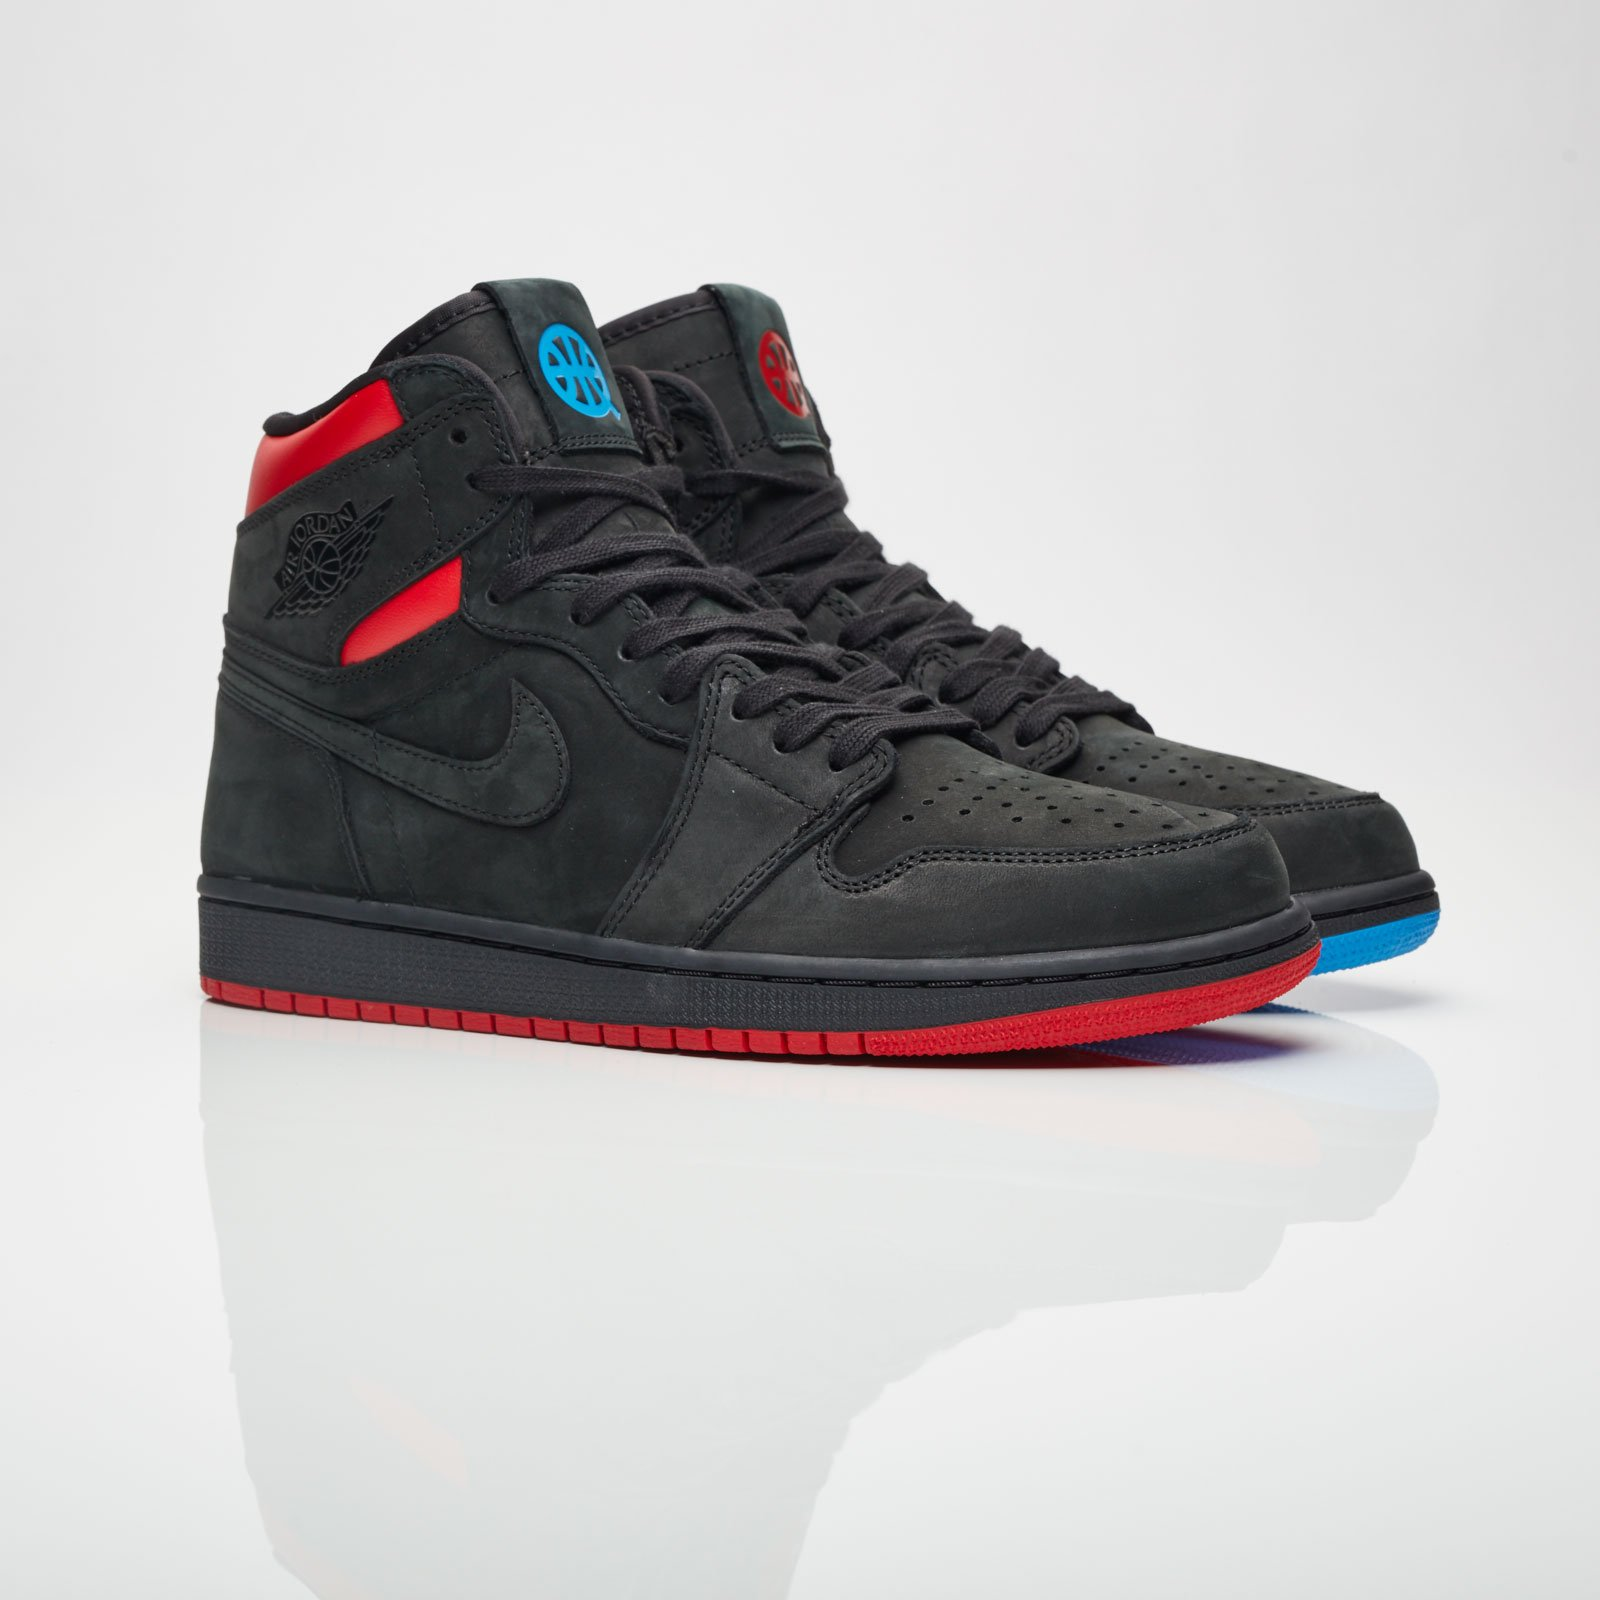 844df15a0fe8 Jordan Brand Air Jordan 1 Retro High OG Q54 - Ah1040-054 ...